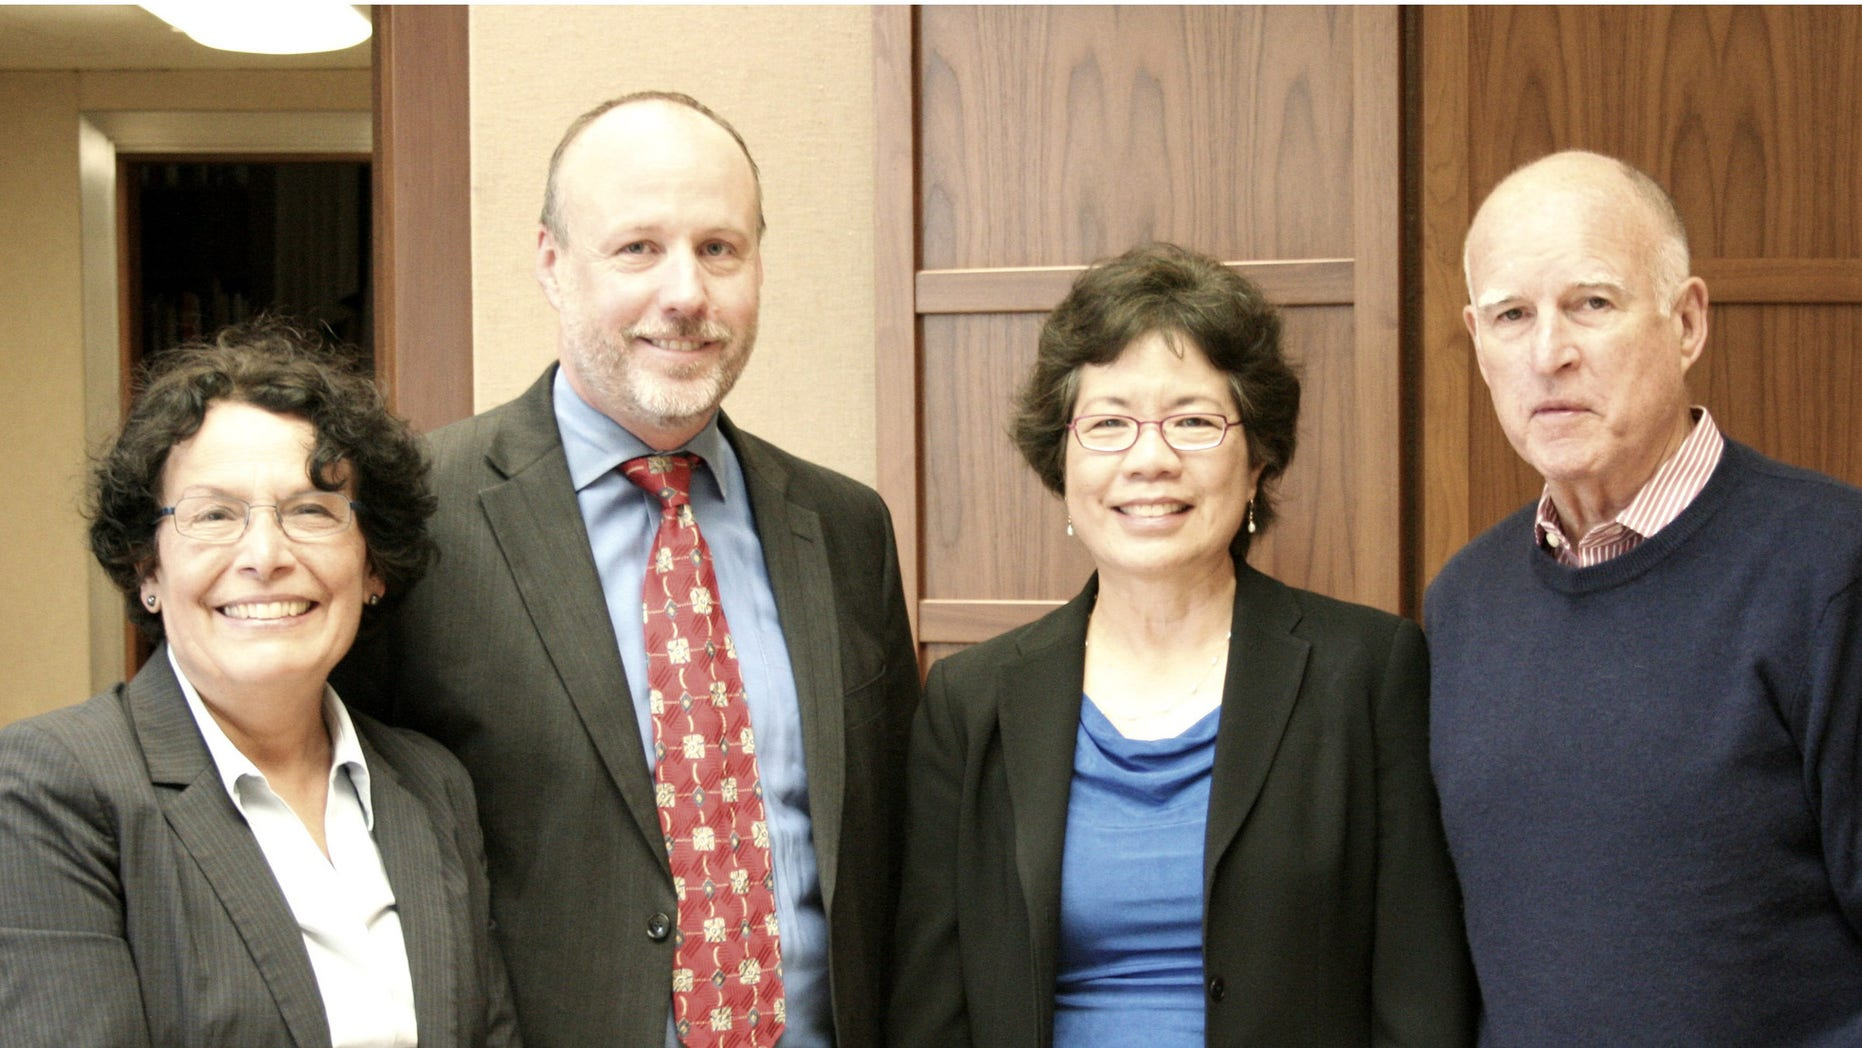 Newly appointed Cal/OSHA Chief Juliann Sum with (pictured left to right) CA Department of Industrial Relations Director Christine Baker, CA Labor and Workforce Development Agency Secretary David Lanier, and Governor Edmund G. Brown Jr.